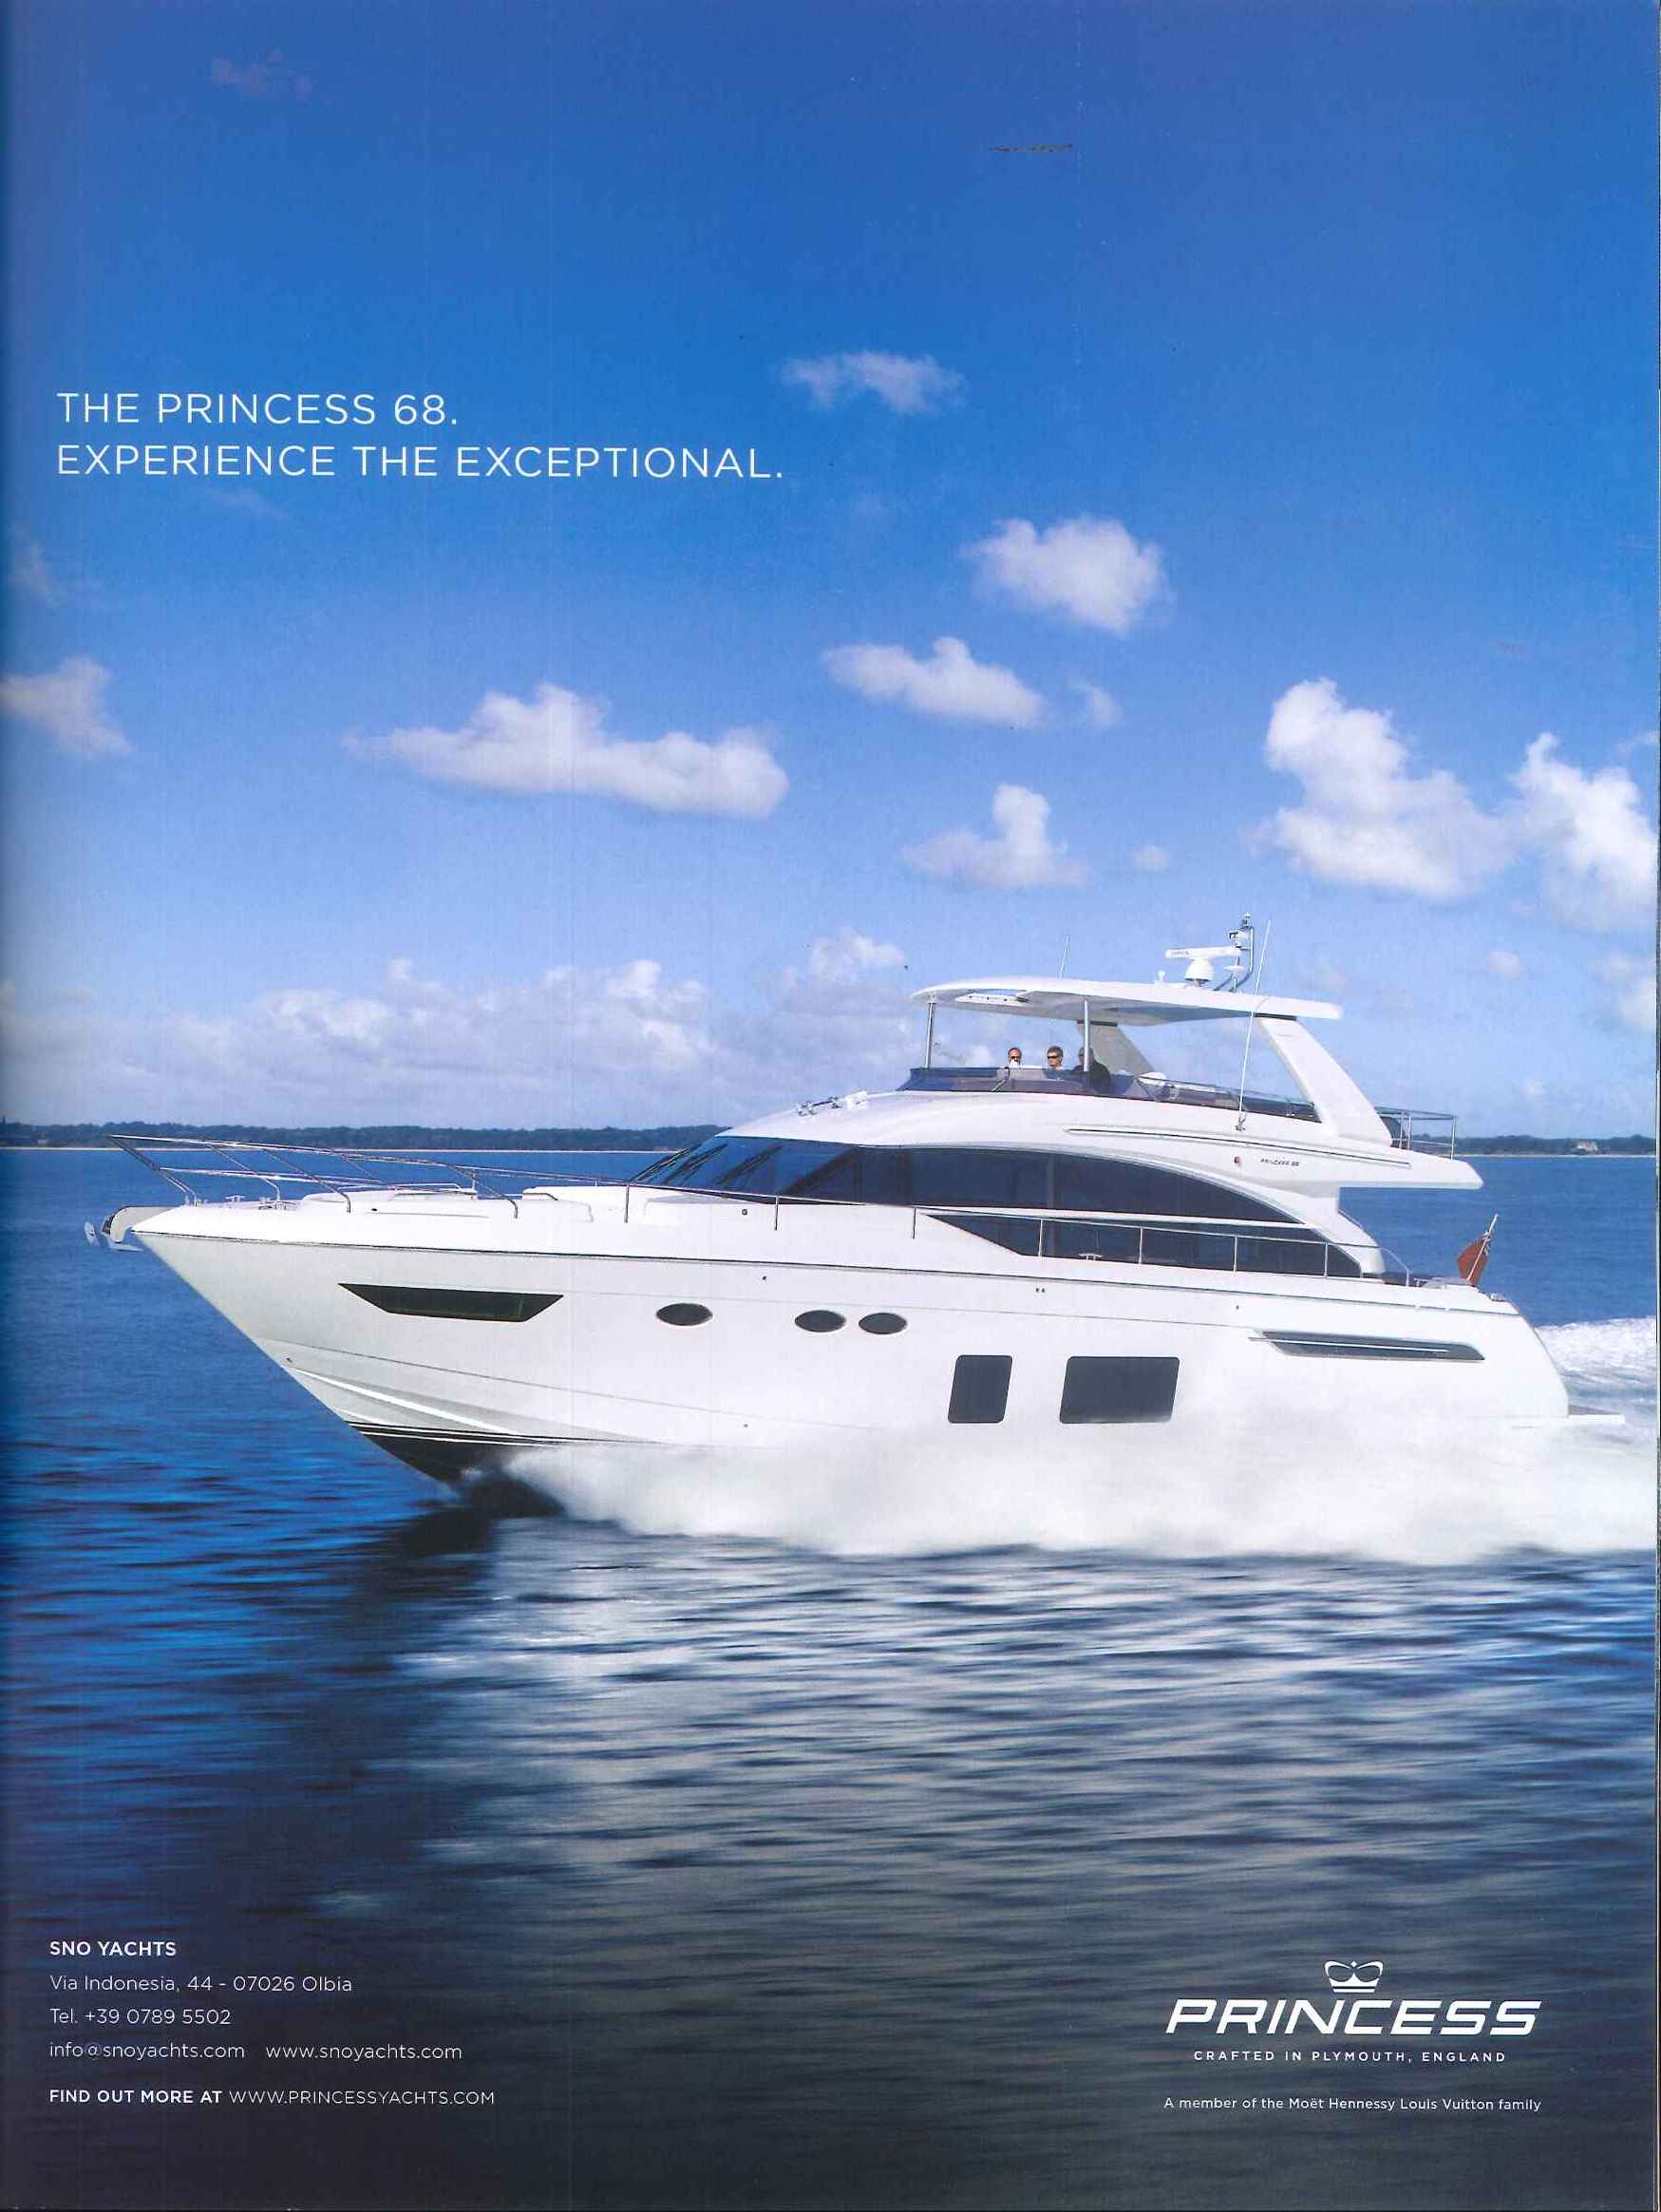 2016 02 ADV THE PRINCESS 68 BARCHE .jpg